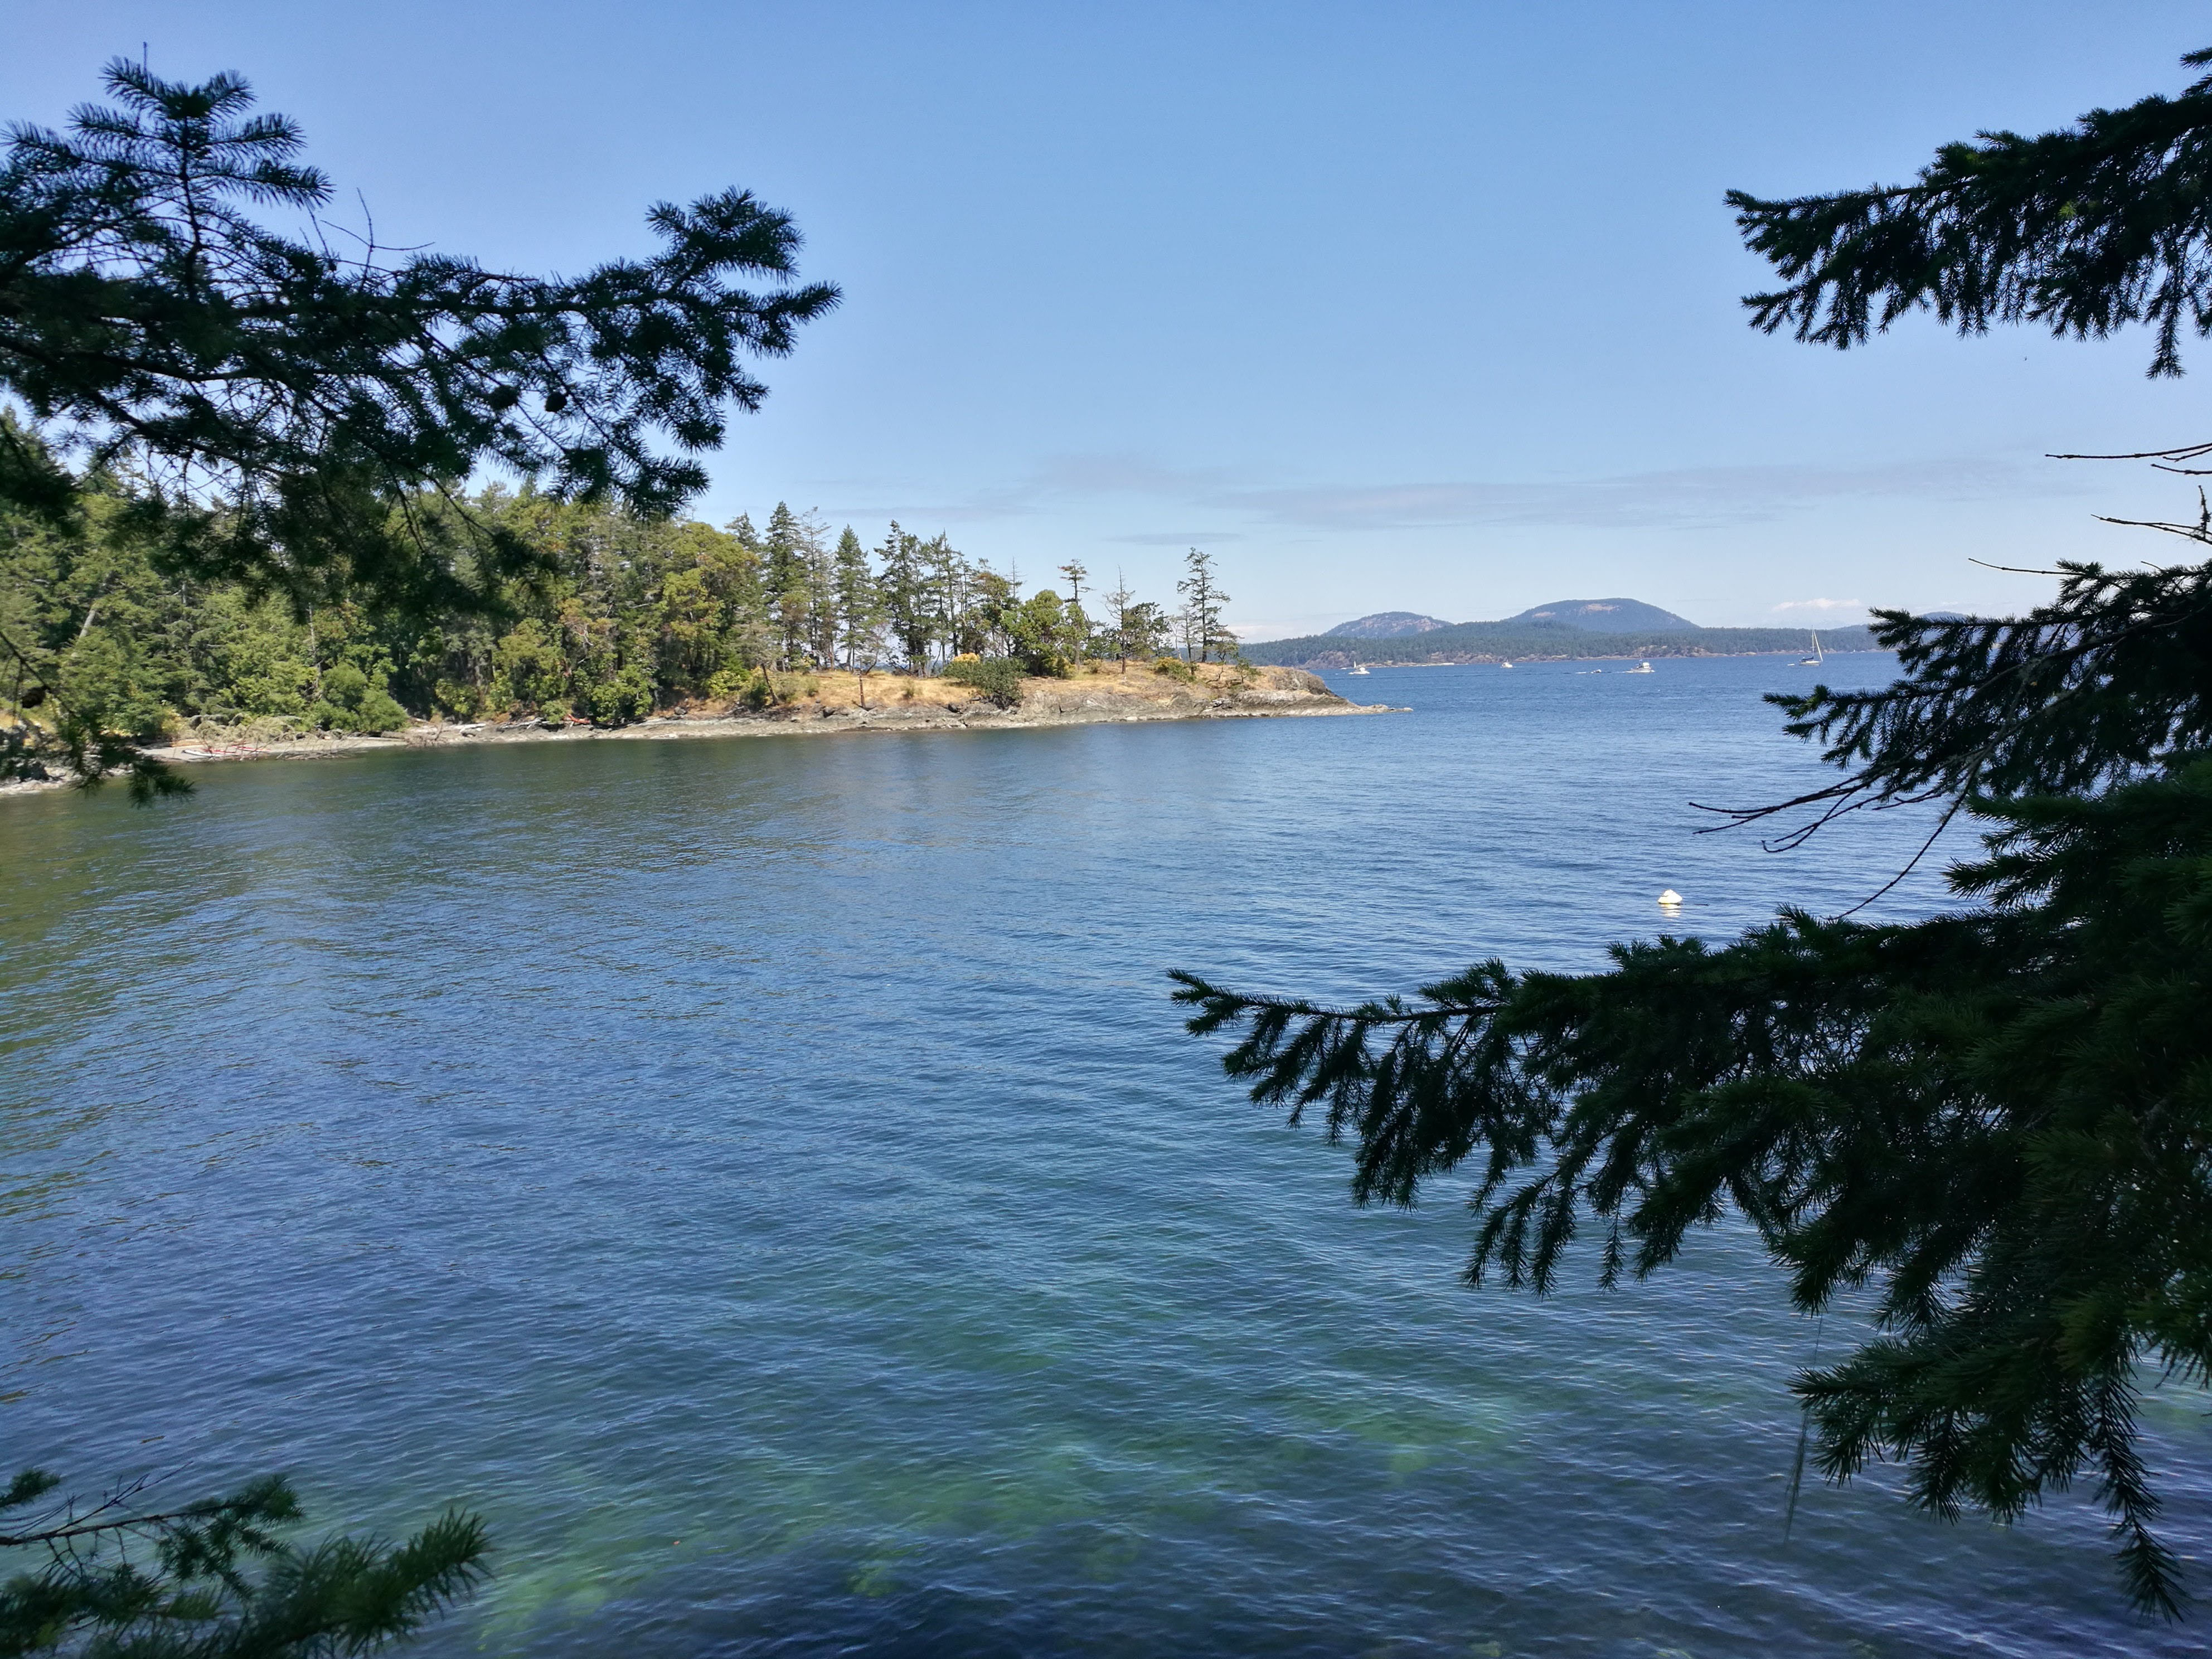 View from Ruckle Provincial Park water side